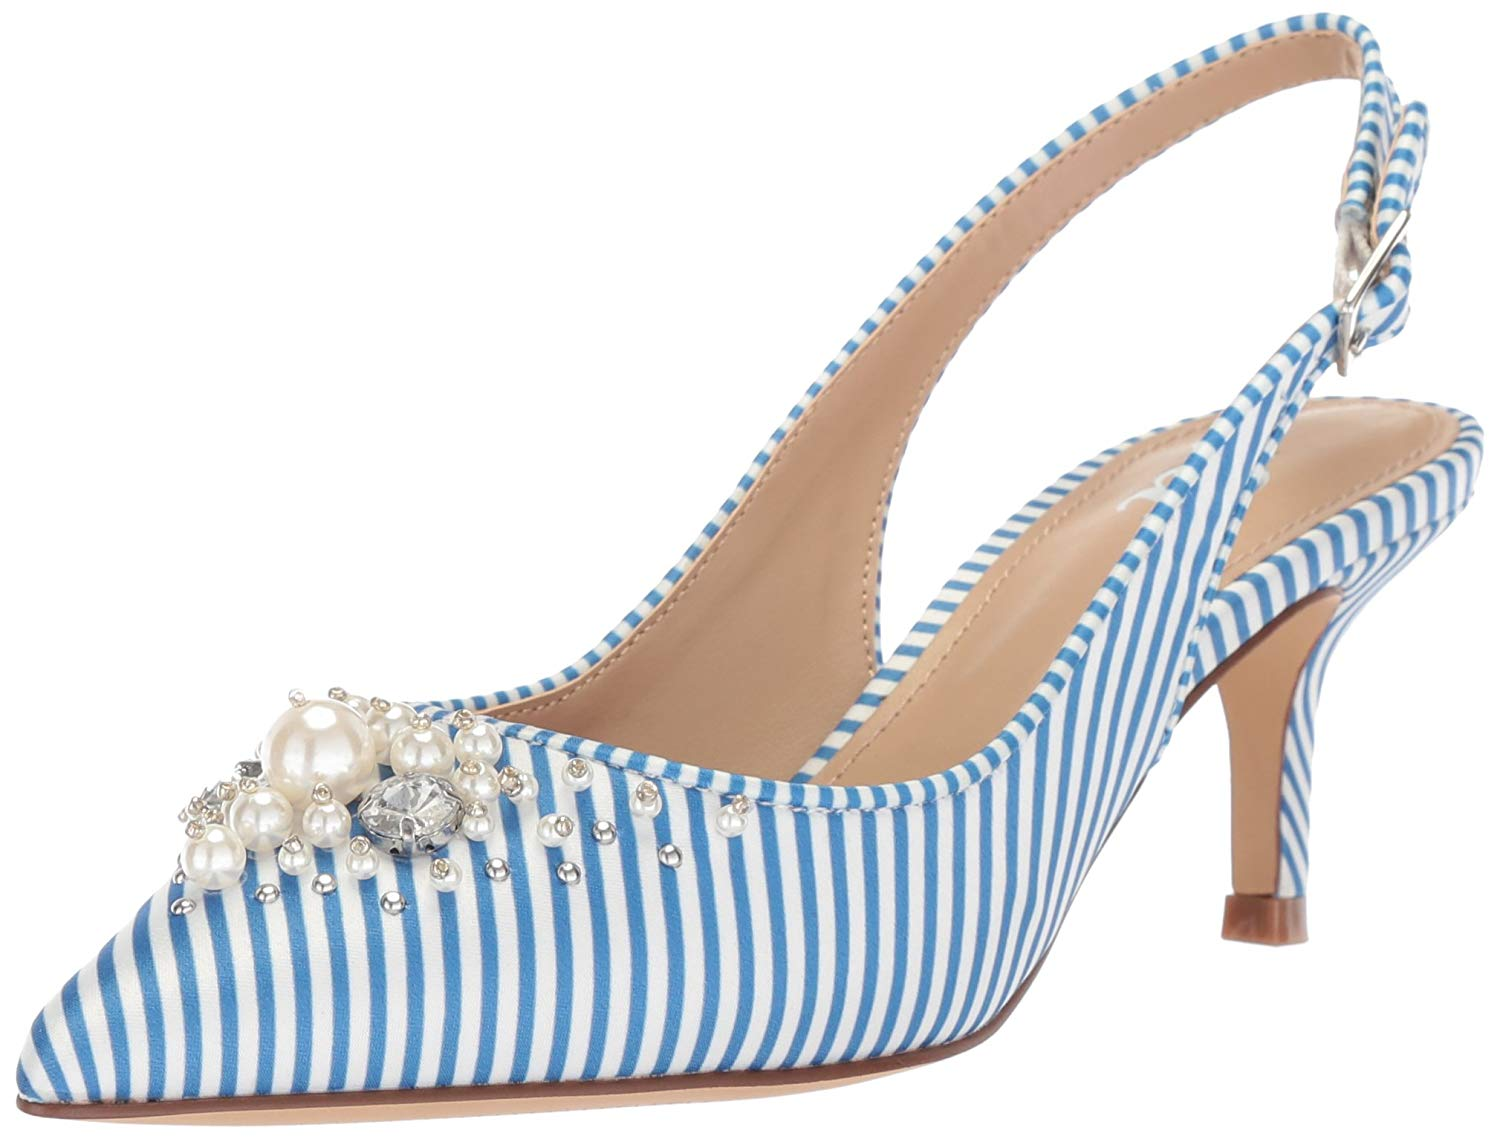 efb07cde59c Get Quotations · The Fix Women s Felicia Slingback Kitten Heel Pump with  Faux Pearls